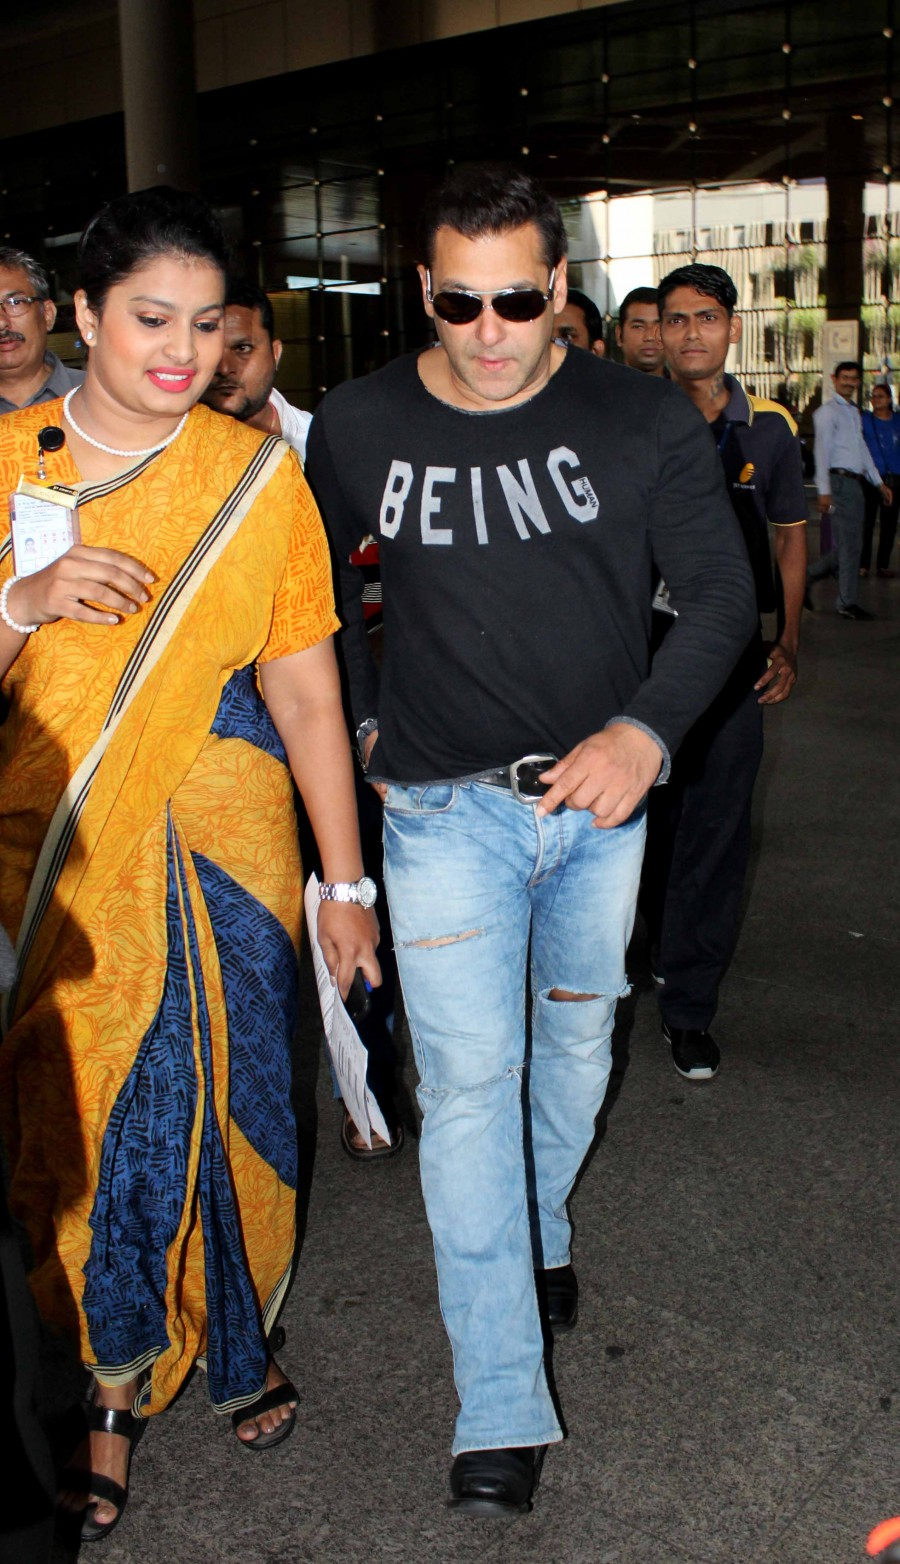 Salman Khan,Salman Khan latest pics,Salman Khan latest images,Salman Khan latest photos,Salman Khan latest pictures,Salman Khan pics,Salman Khan images,Salman Khan photos,Salman Khan stills,Salman Khan pictures